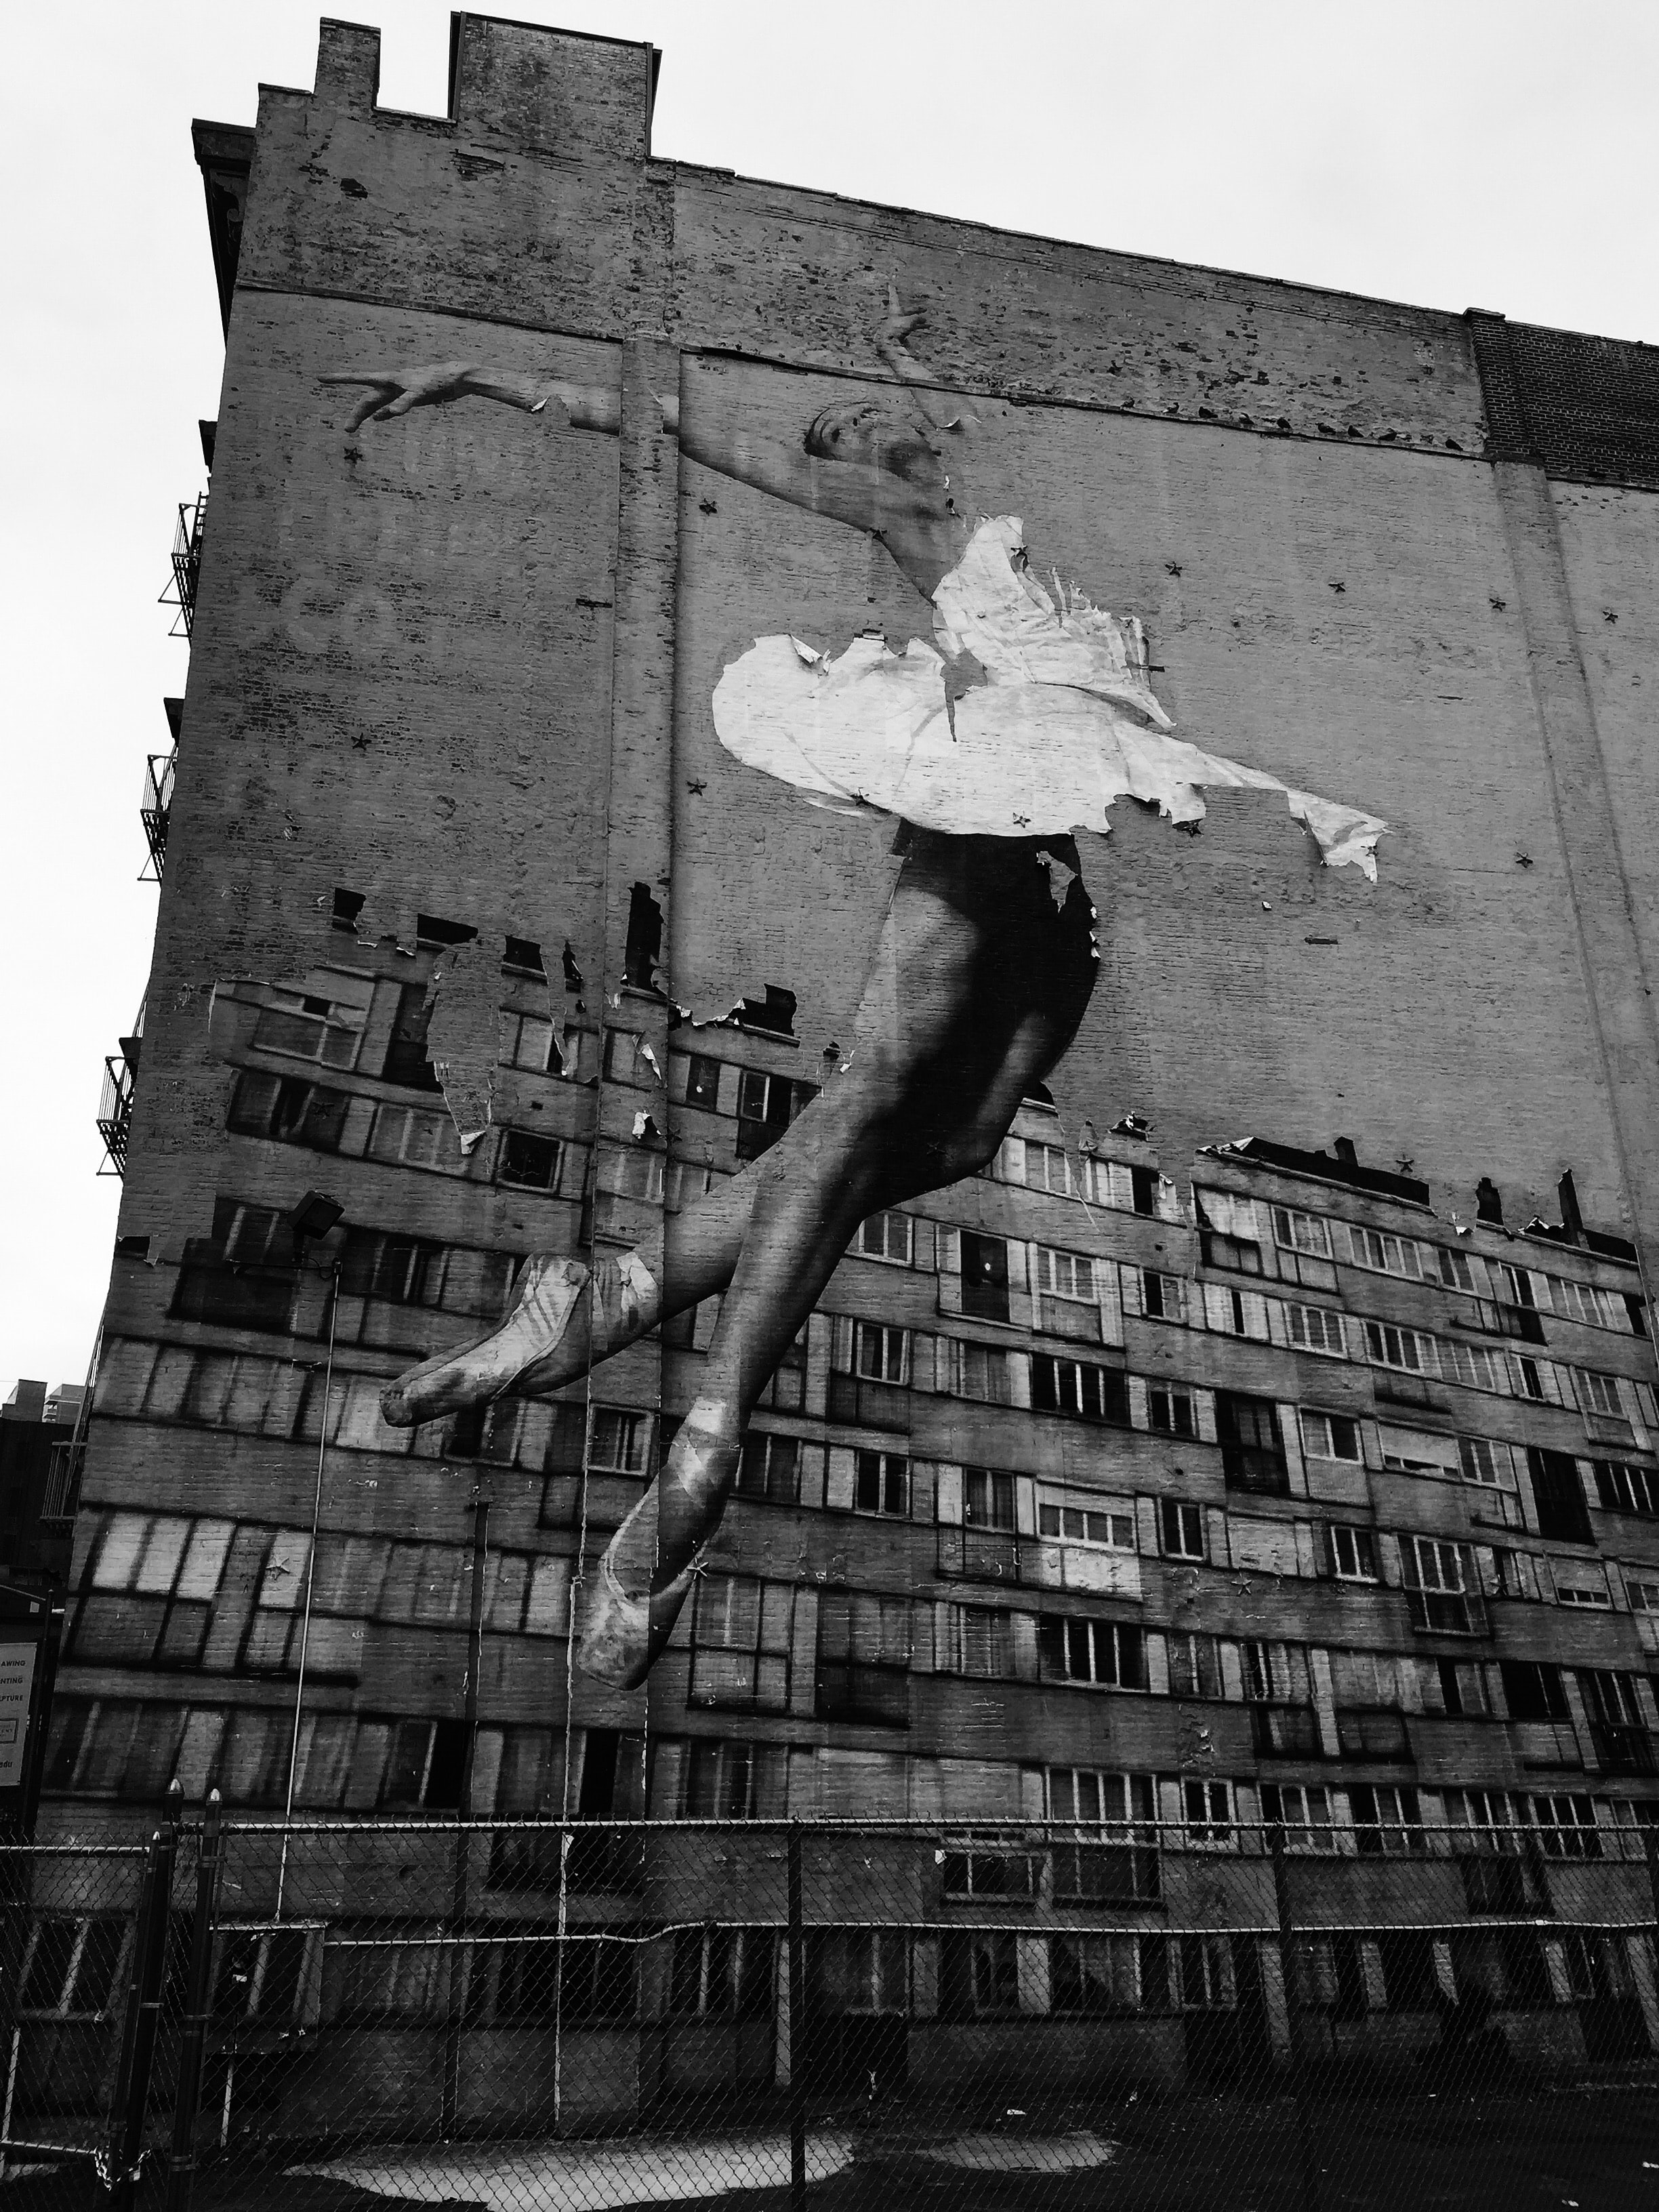 A ballet dancer painted on a large abandoned building.